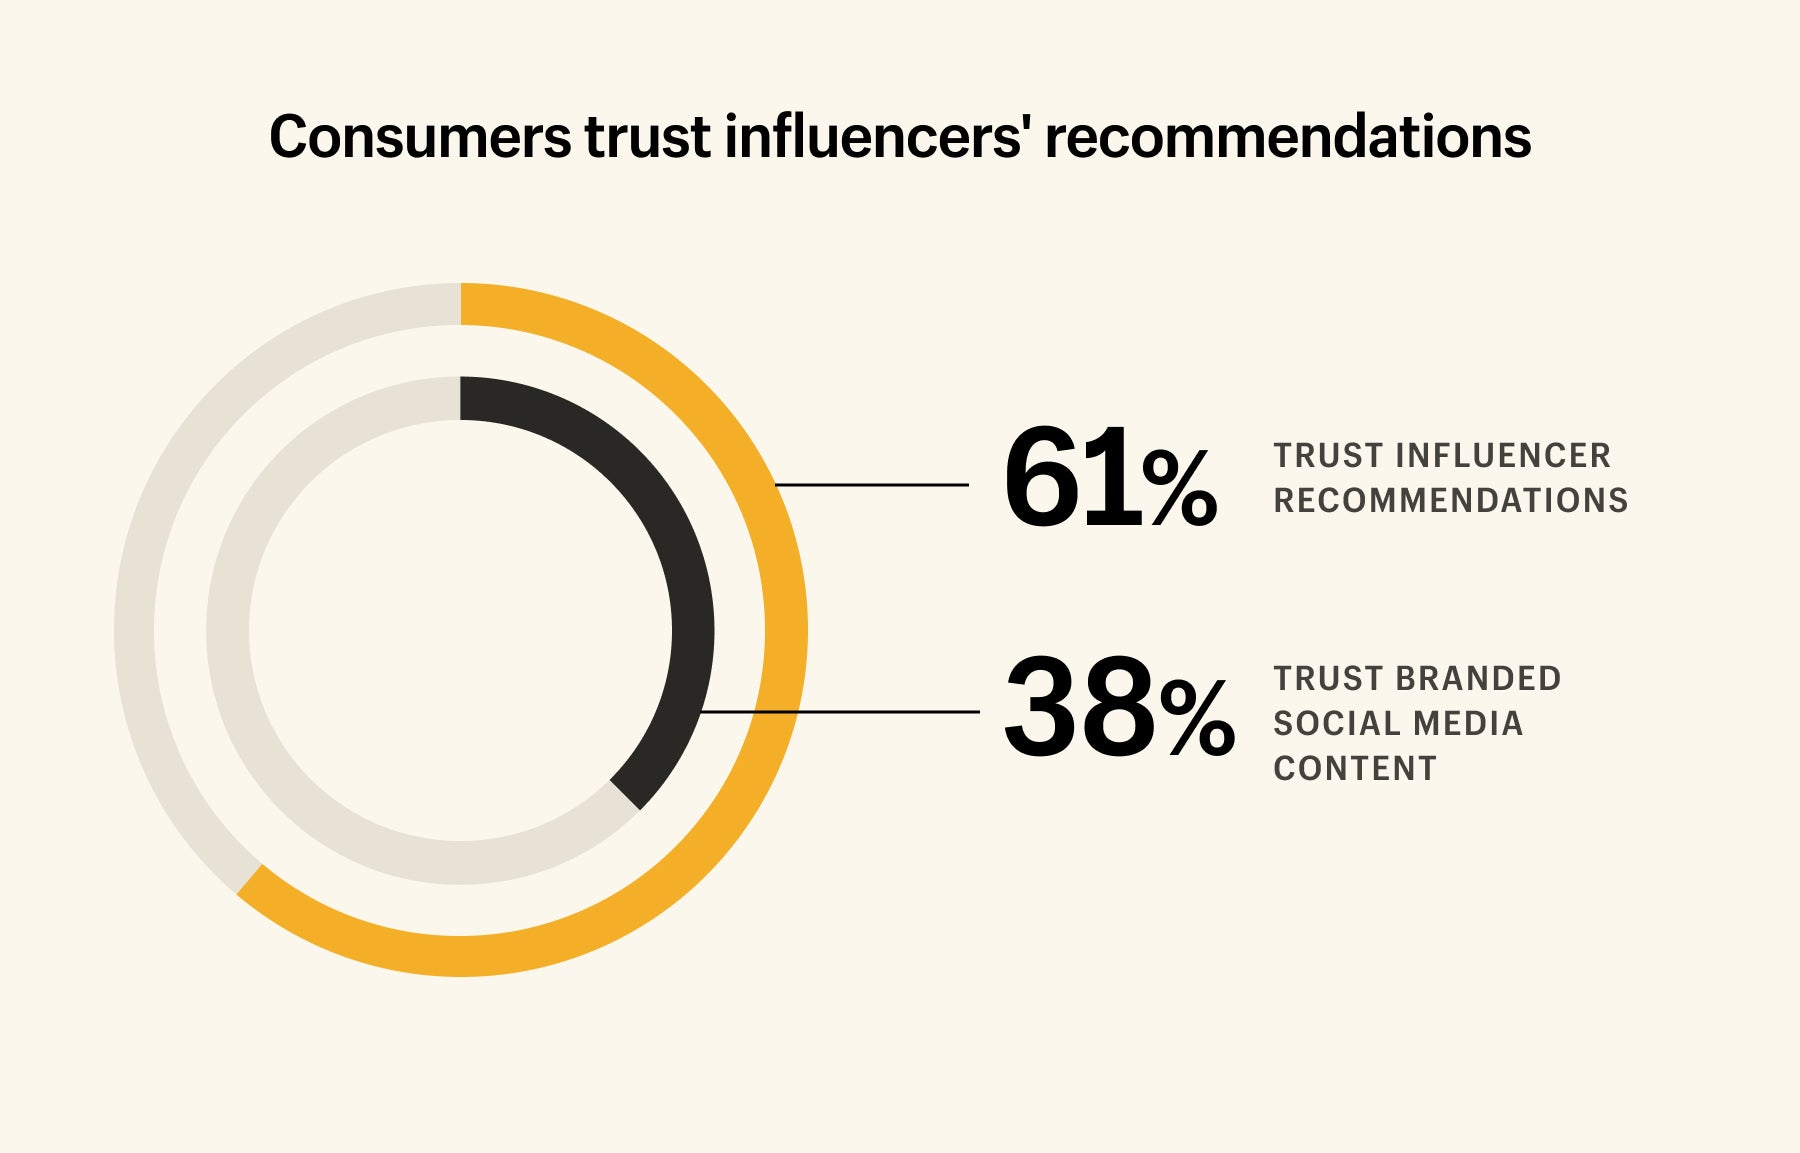 61% of consumers trust influencer recommendations